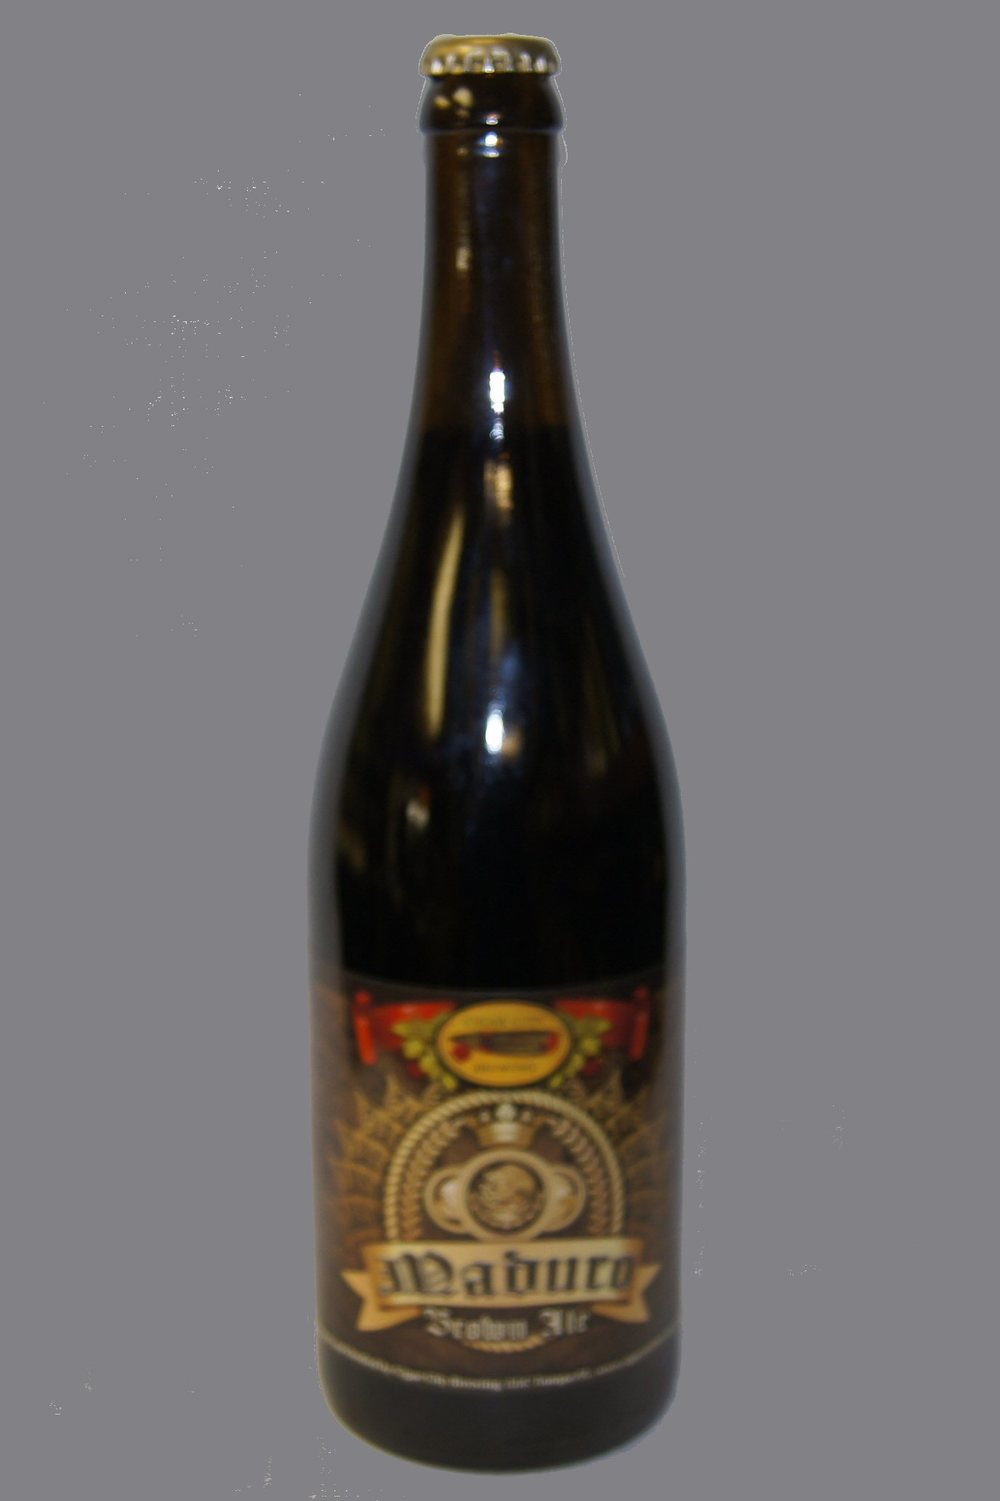 CIGA CITY-Maburo Brown Ale.jpg